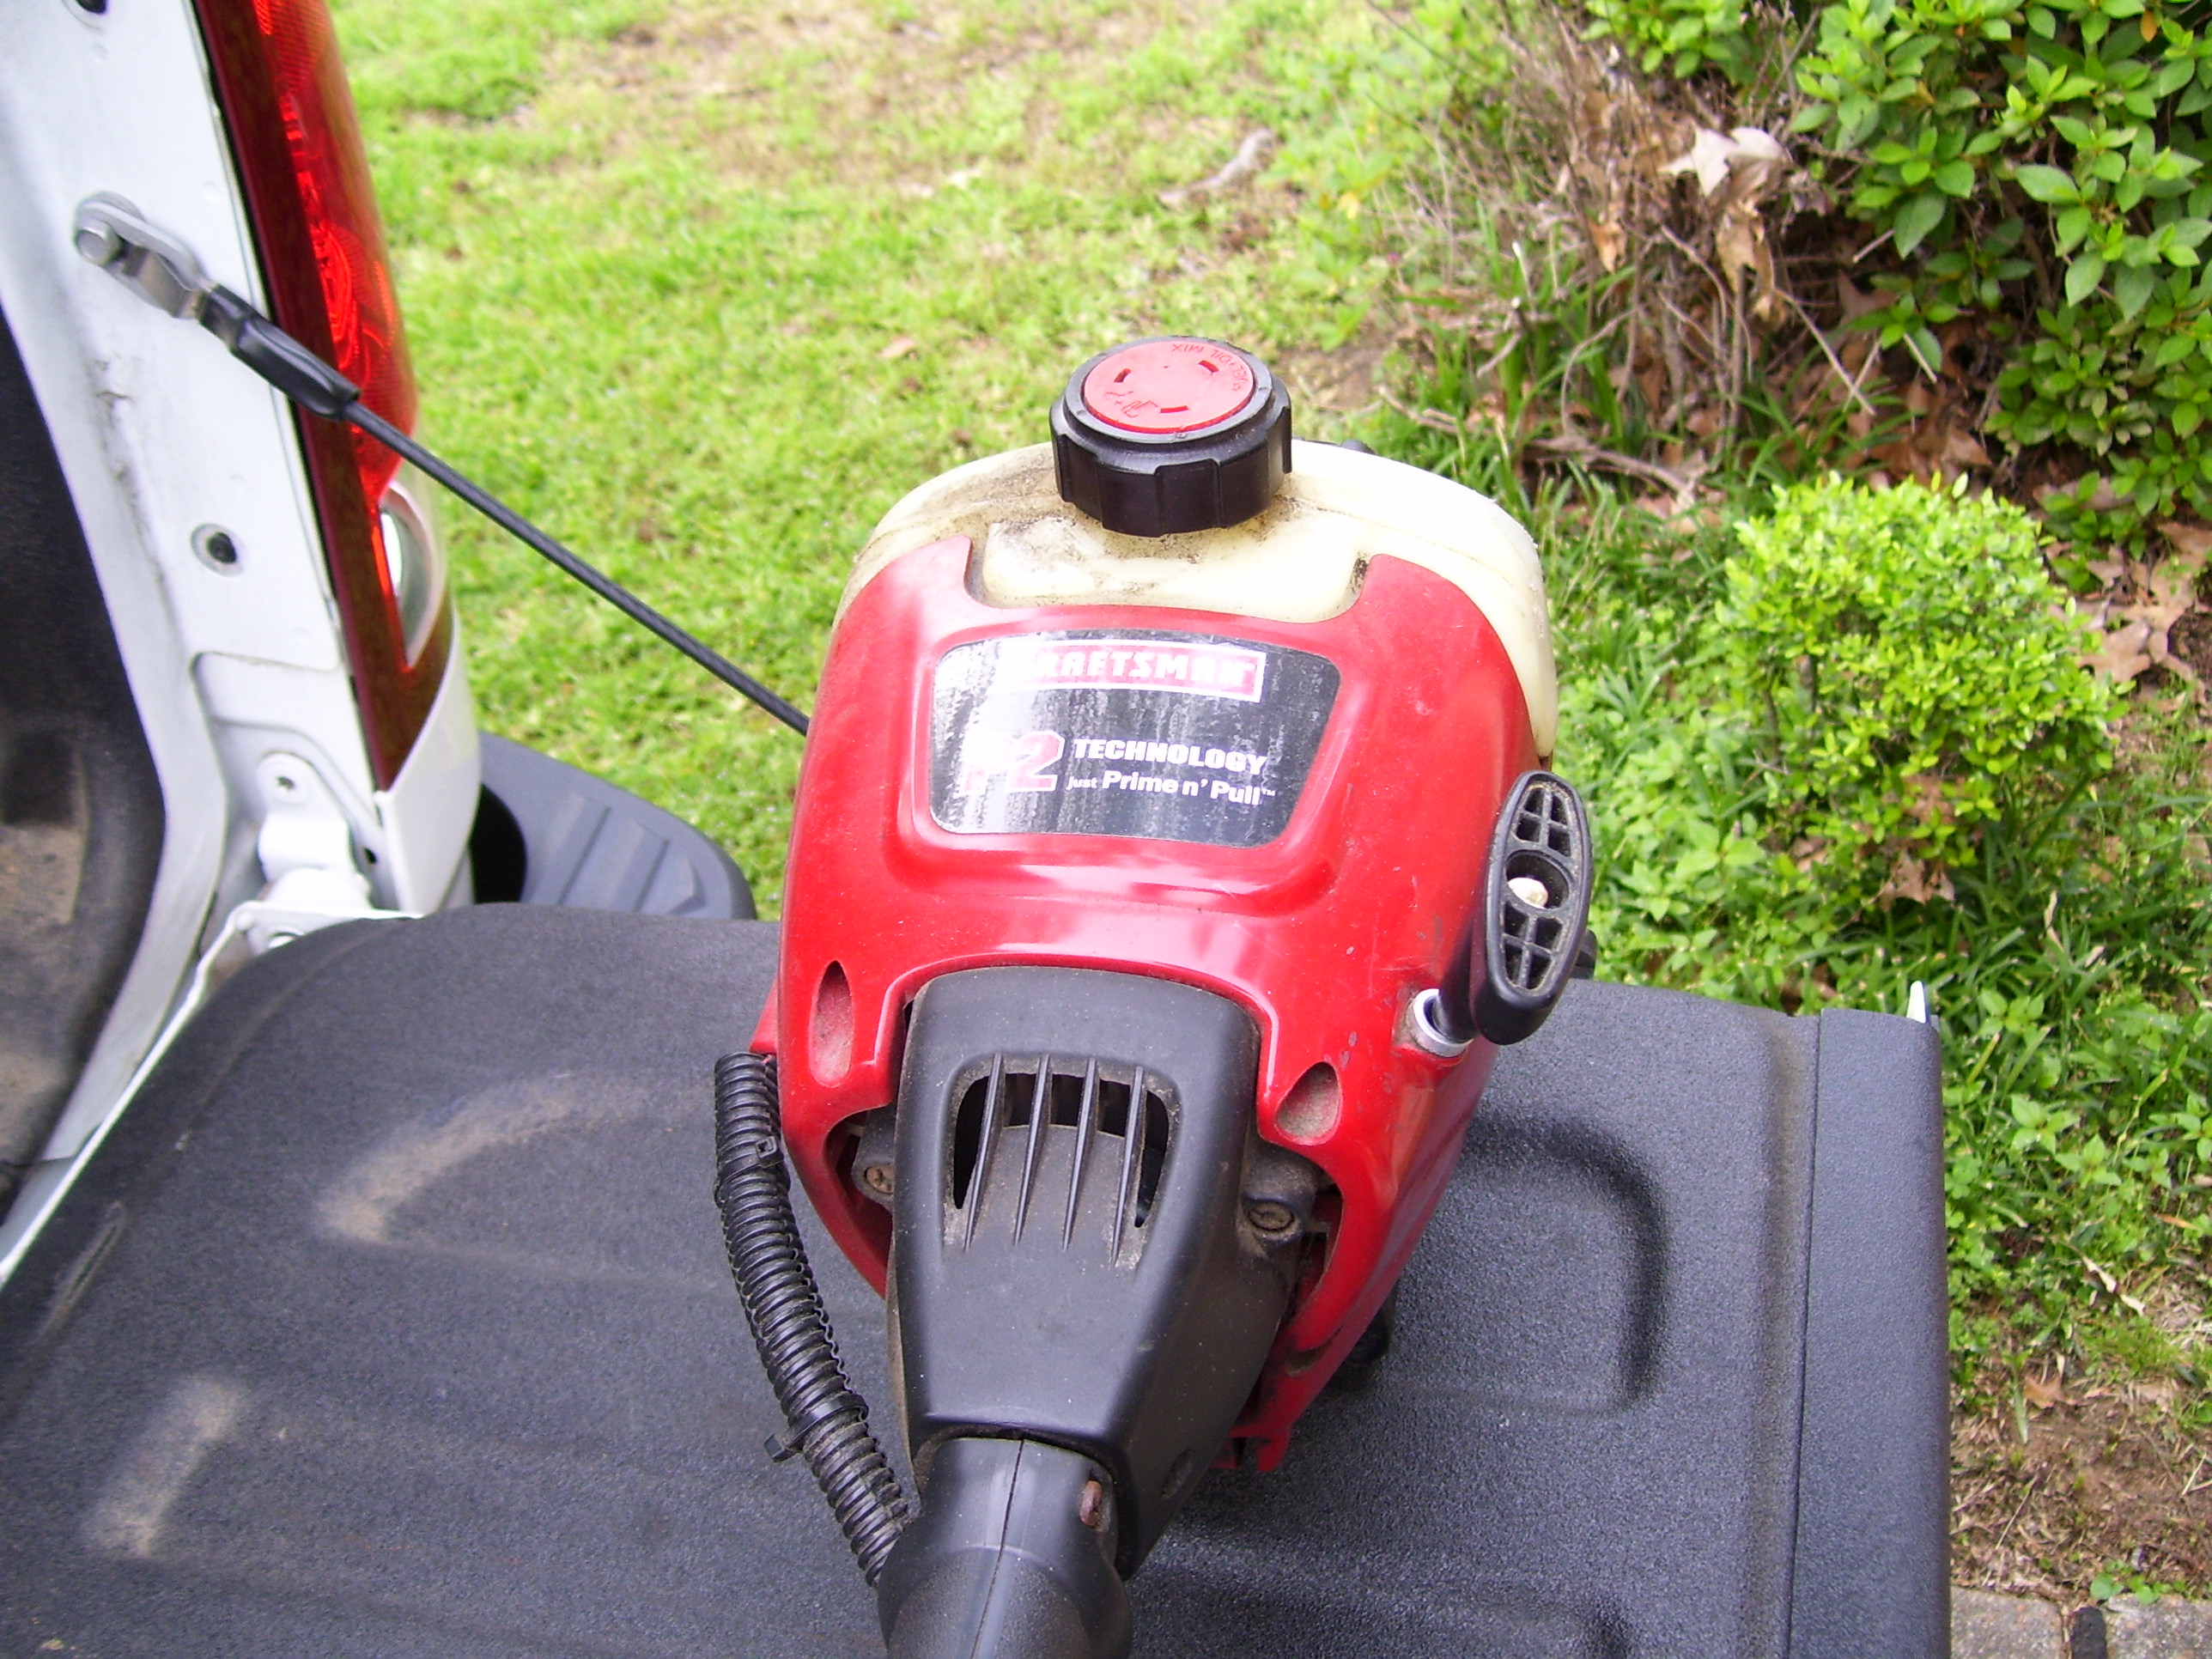 Craftsman 32Cc Weed Eater Billedgalleri - whitman gelo-seco info